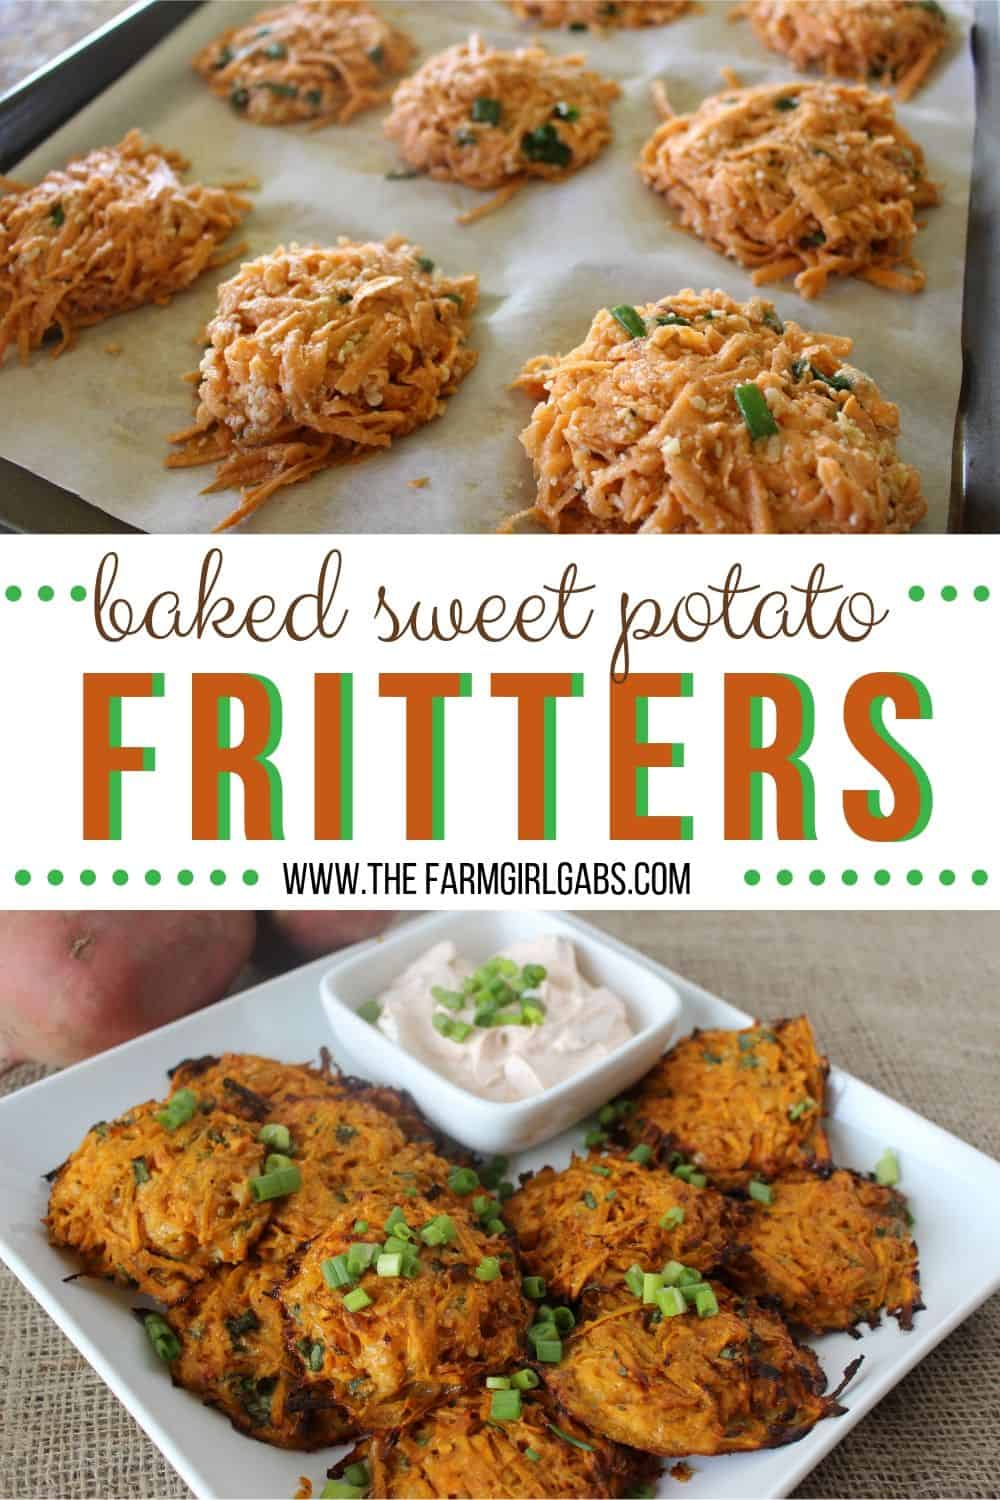 Baked sweet potato fritters are a delicious and healthy recipe. This dish is a perfect side dish or appetizer. This sweet potato fritter recipe is perfect to make in the fall or any time fo the year. #fritters #sweetpotatoes